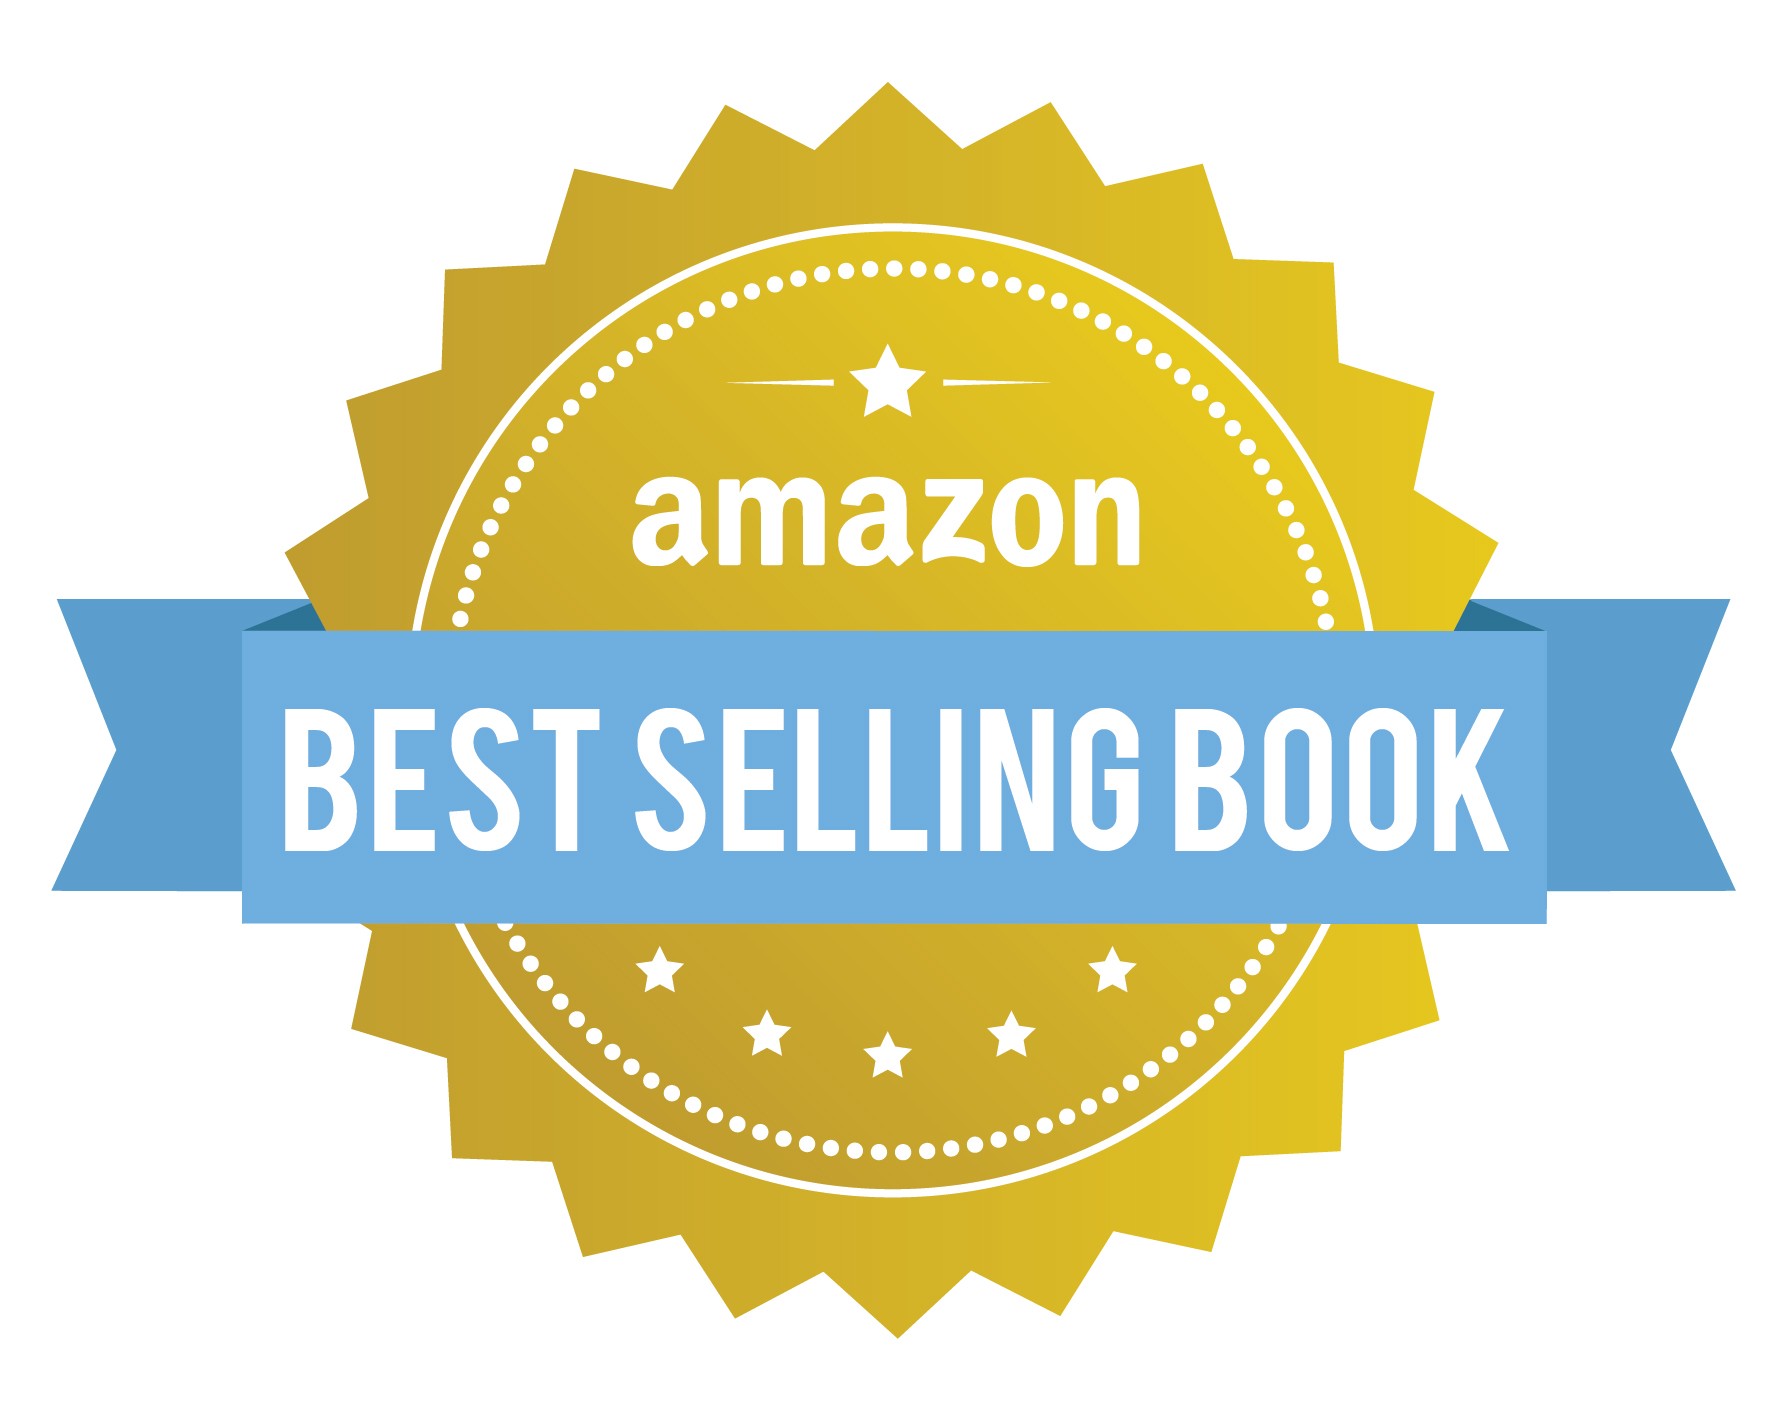 Amazon best selling book badge